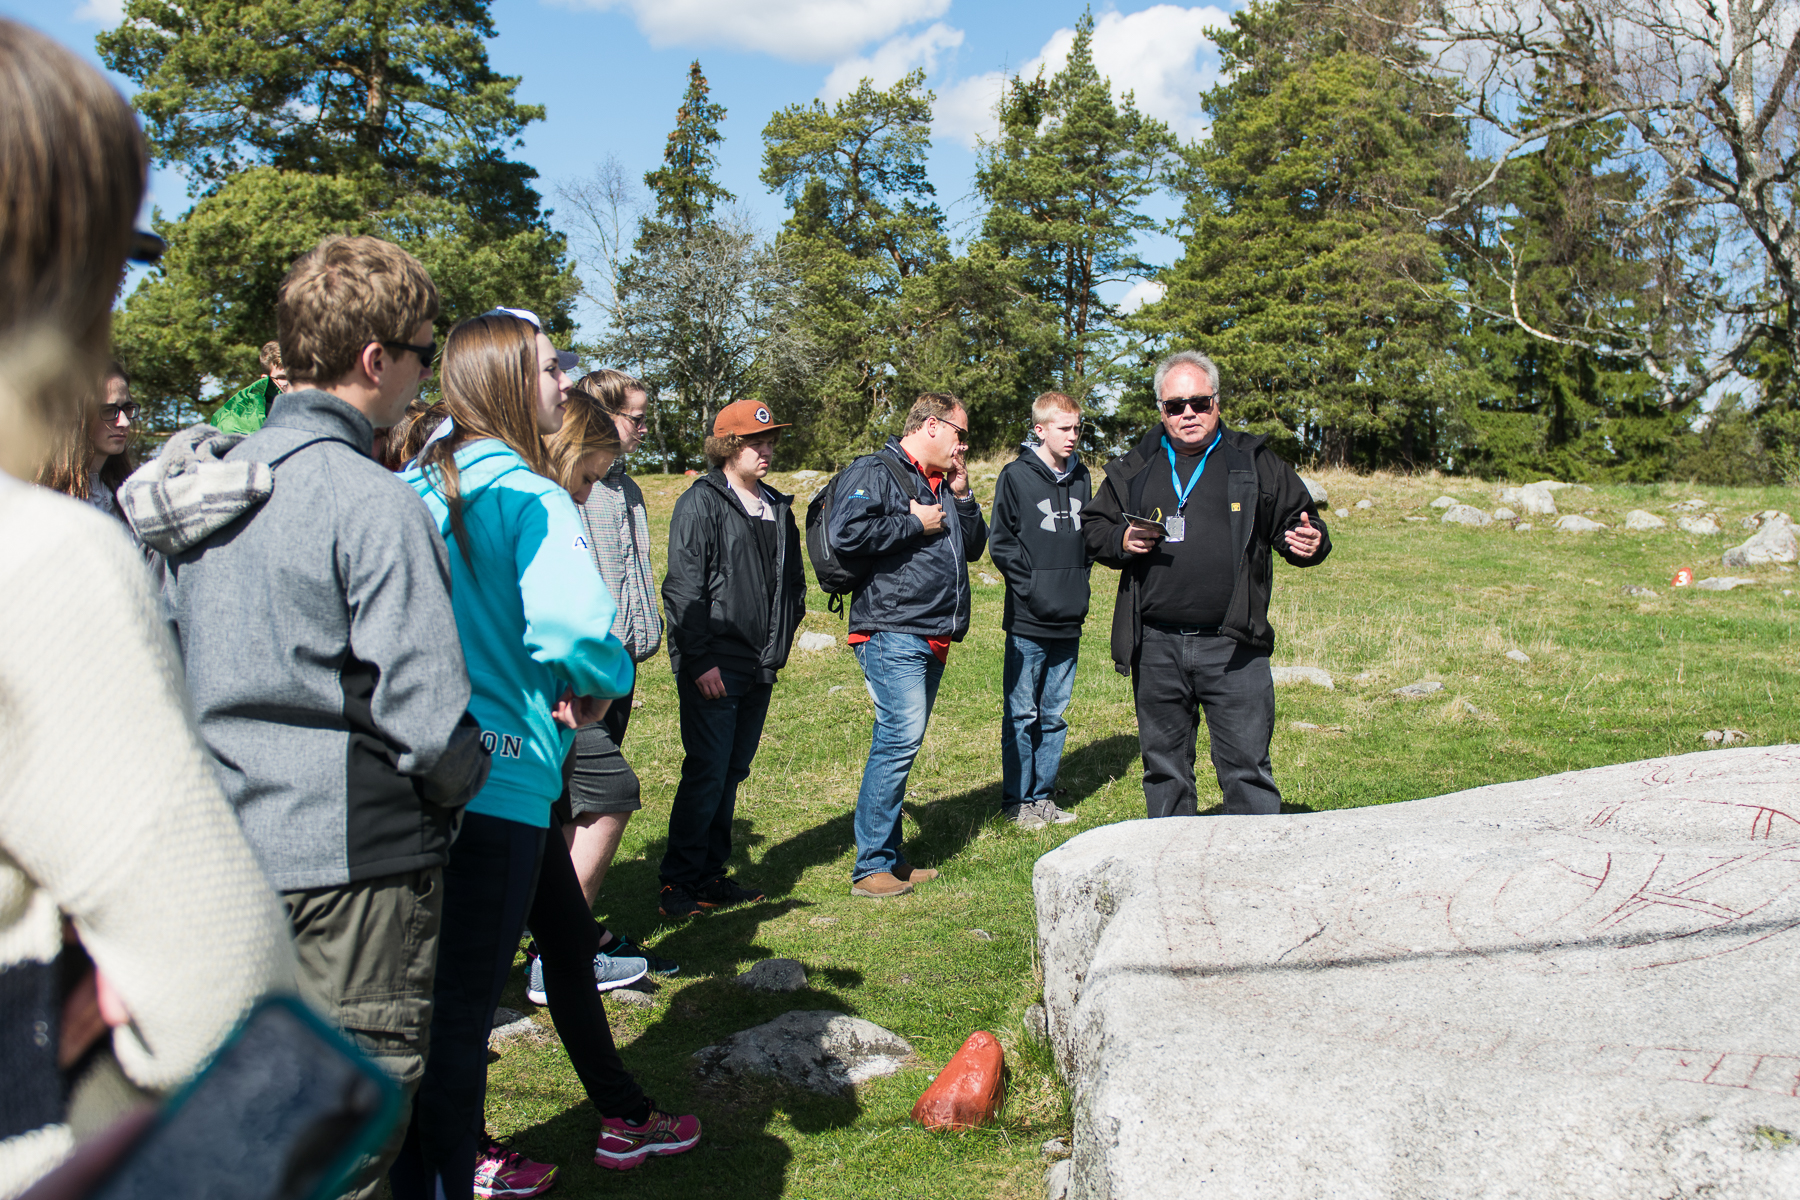 Guided tour at Granbyhällen